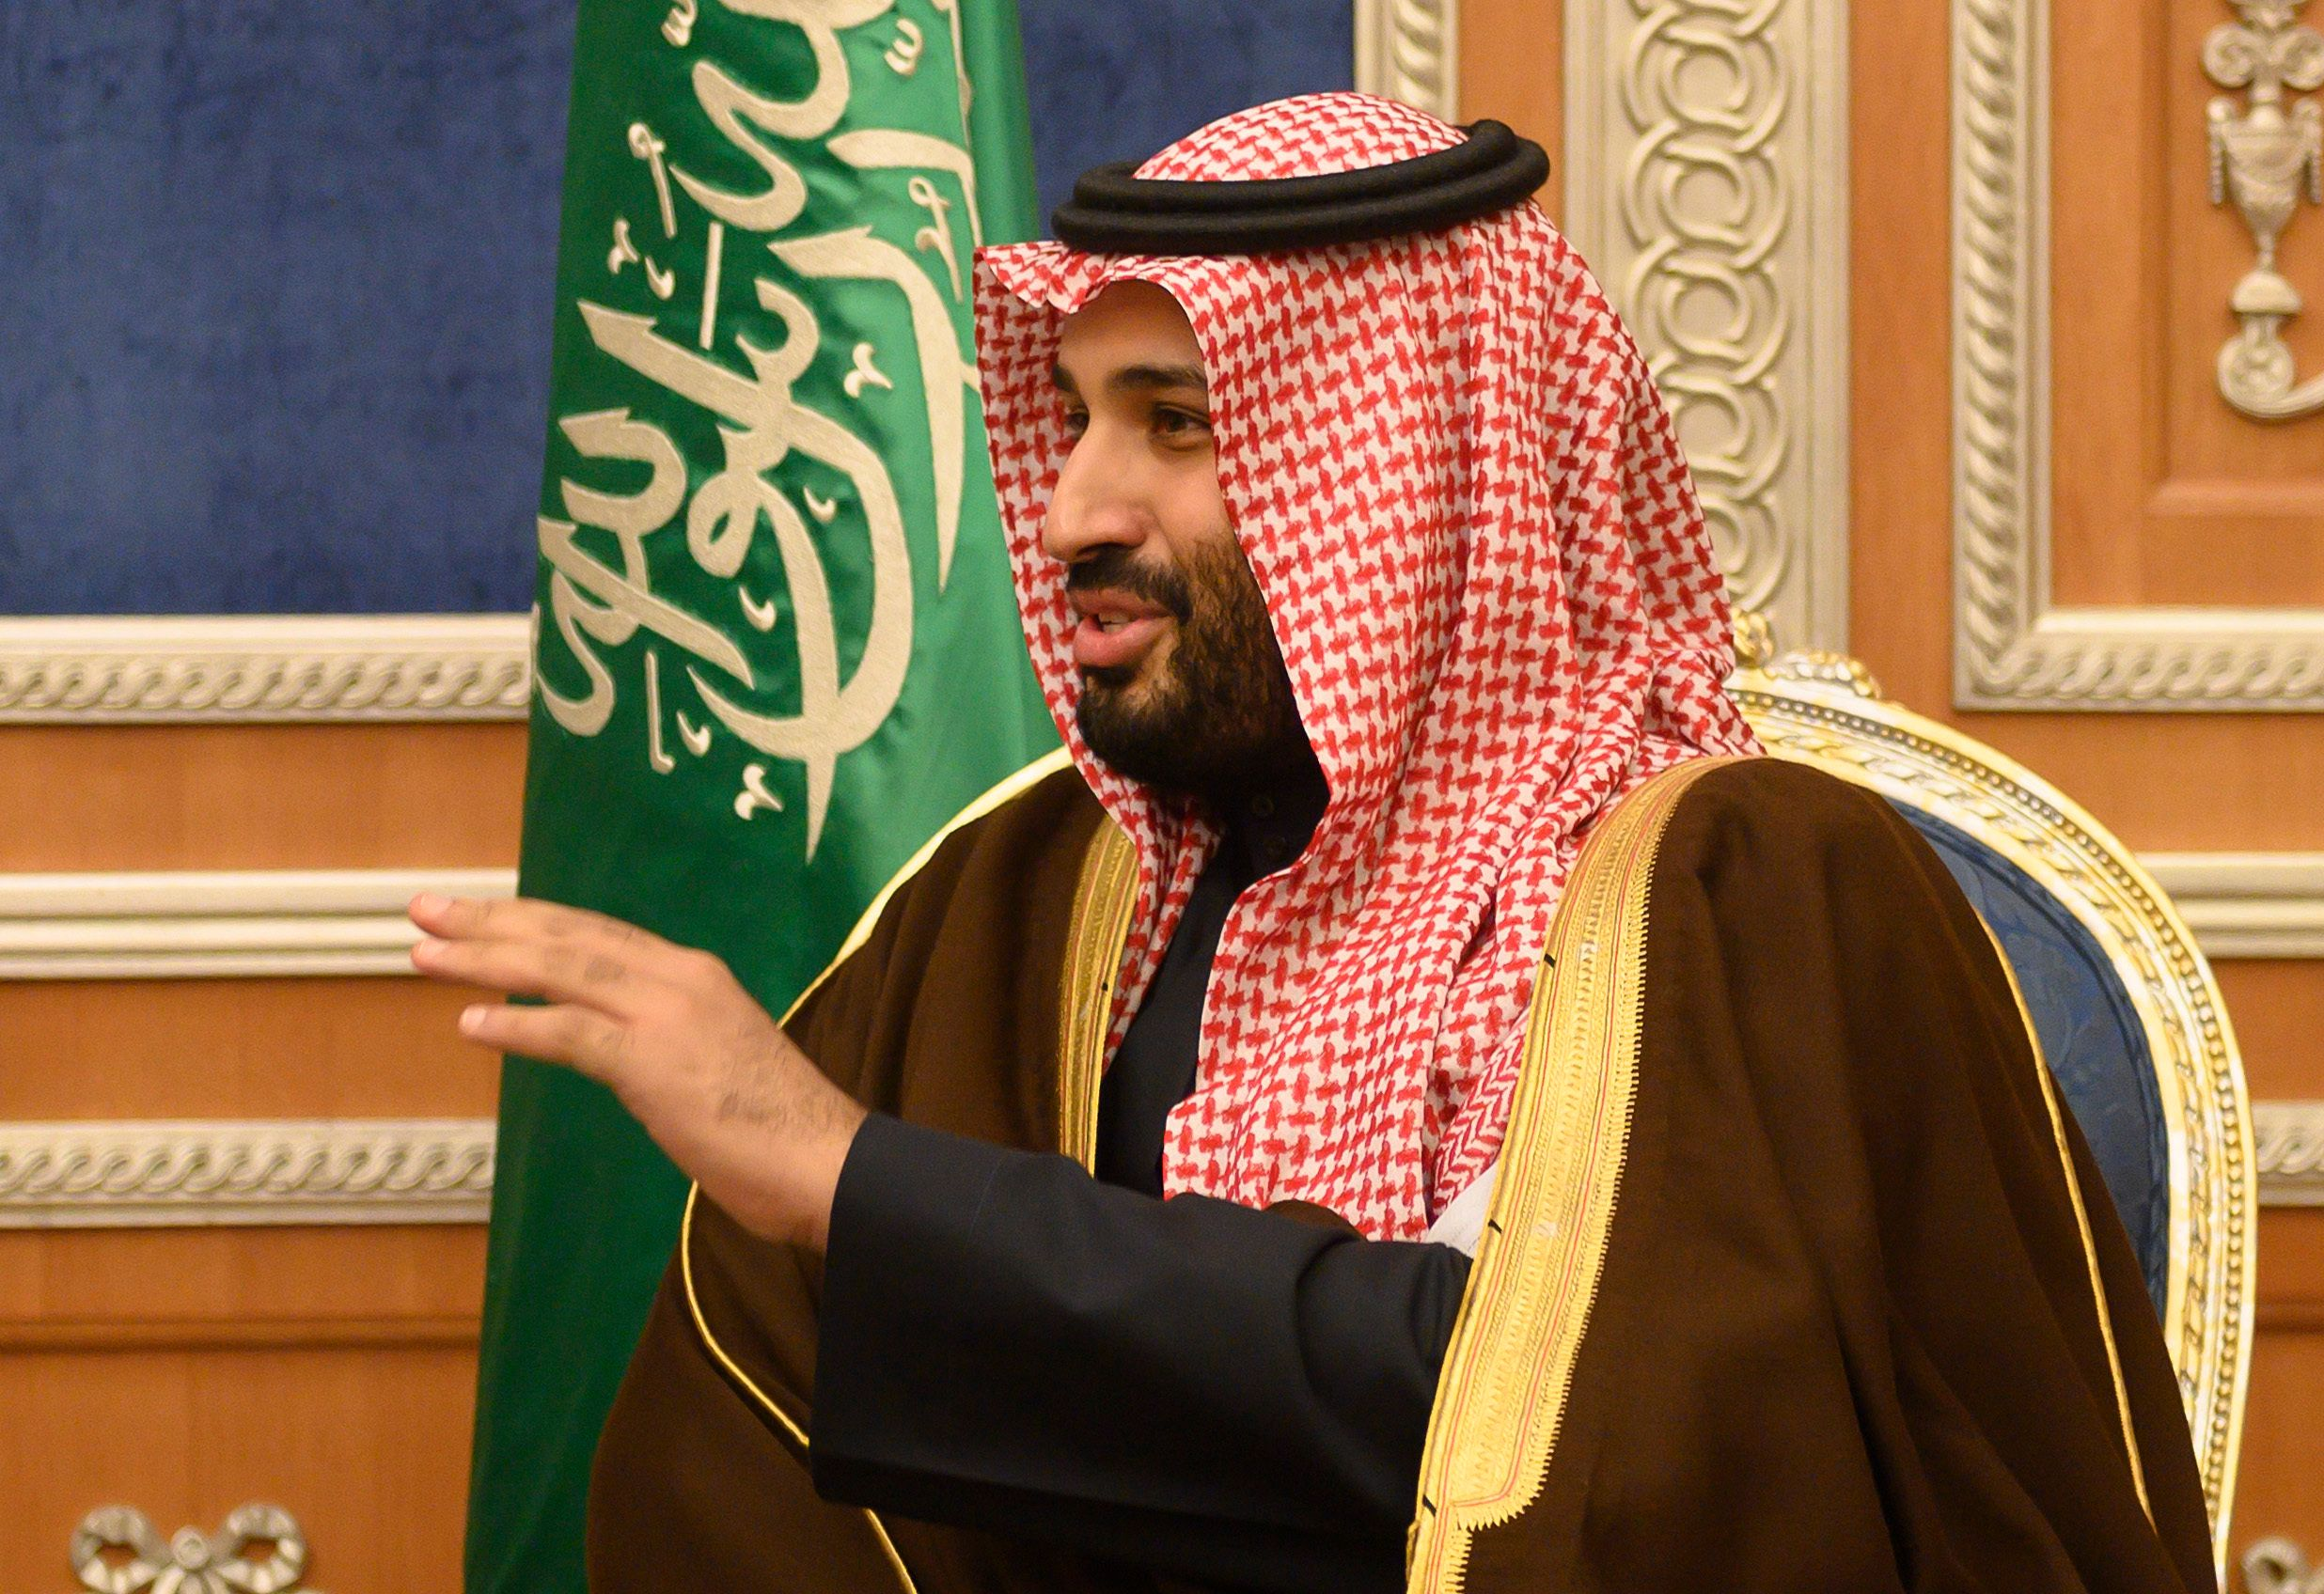 Saudi Crown Prince Mohammed bin Salman, meets with U.S. Secretary of State Mike Pompeo at the Royal Court, in Riyadh, Monday, January 14, 2019. Pompeo met with Saudi King Salman and the crown prince on the latest stop of his Middle East tour that has so far been dominated by questions and concerns about the withdrawal of U.S. troops from Syria. (Andrew Cabellero-Reynolds/Pool via AP)